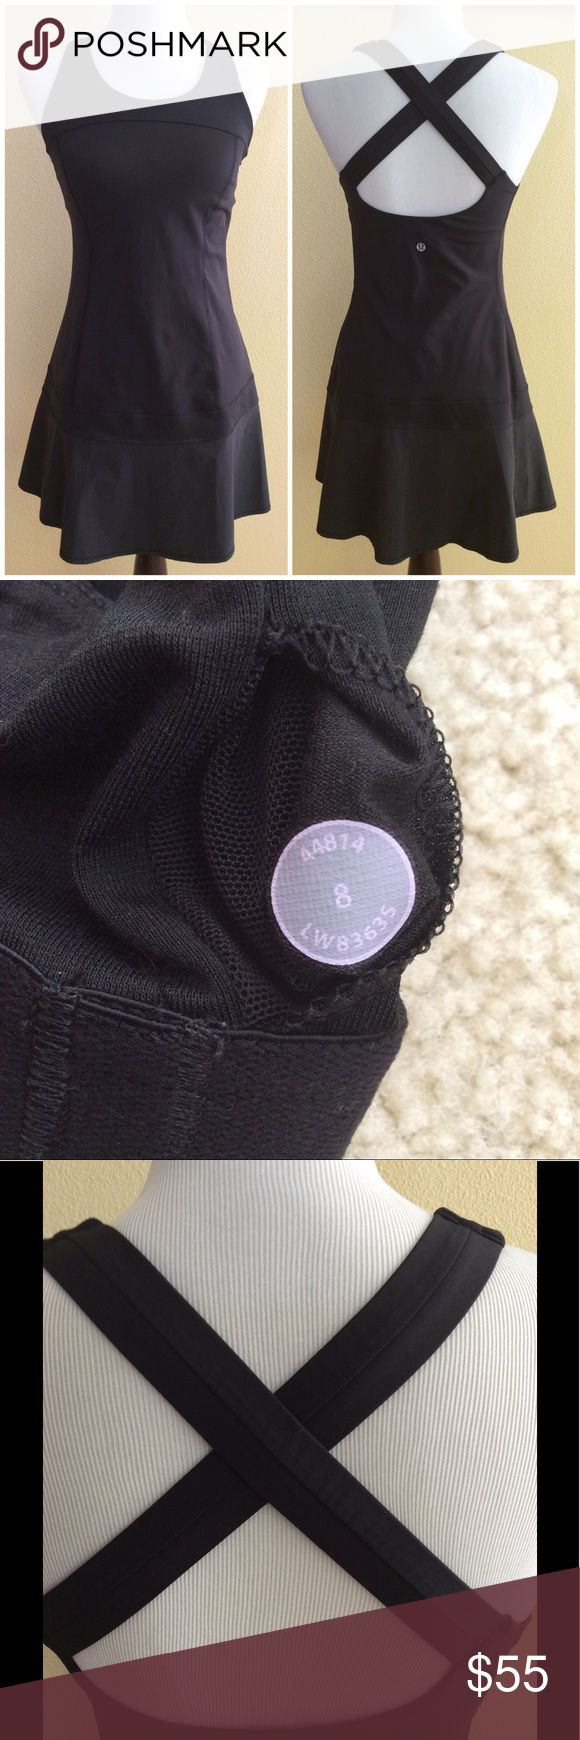 Lululemon Dress- Black- size 8 Great used condition, no holes stains rips. Very cute! Size dot shown.  055 lululemon athletica Dresses